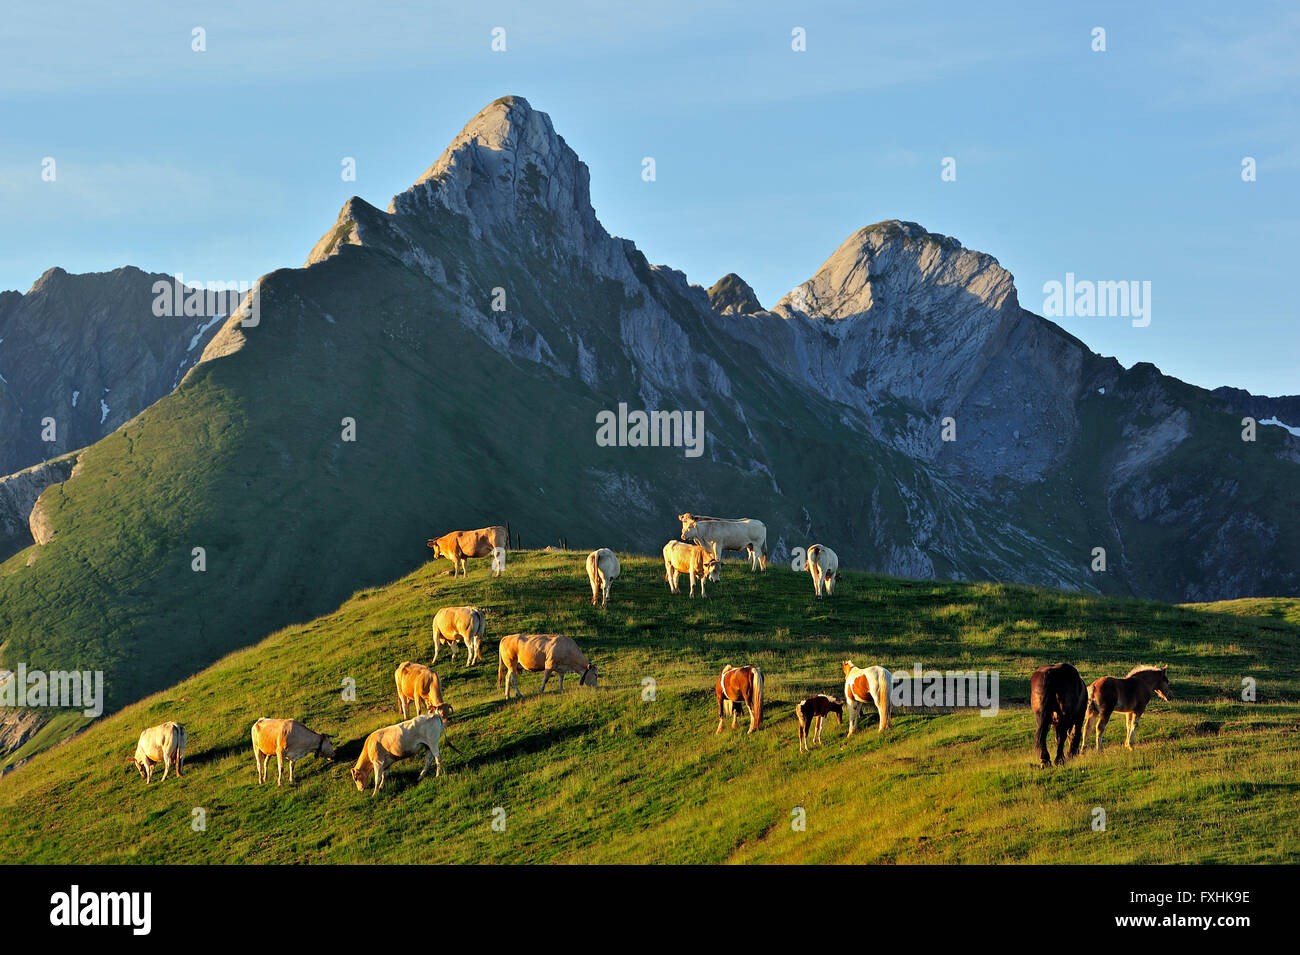 Domestic cows (Bos taurus) and free roaming horses in the Pyrénées-Atlantiques, Pyrenees, France - Stock Image